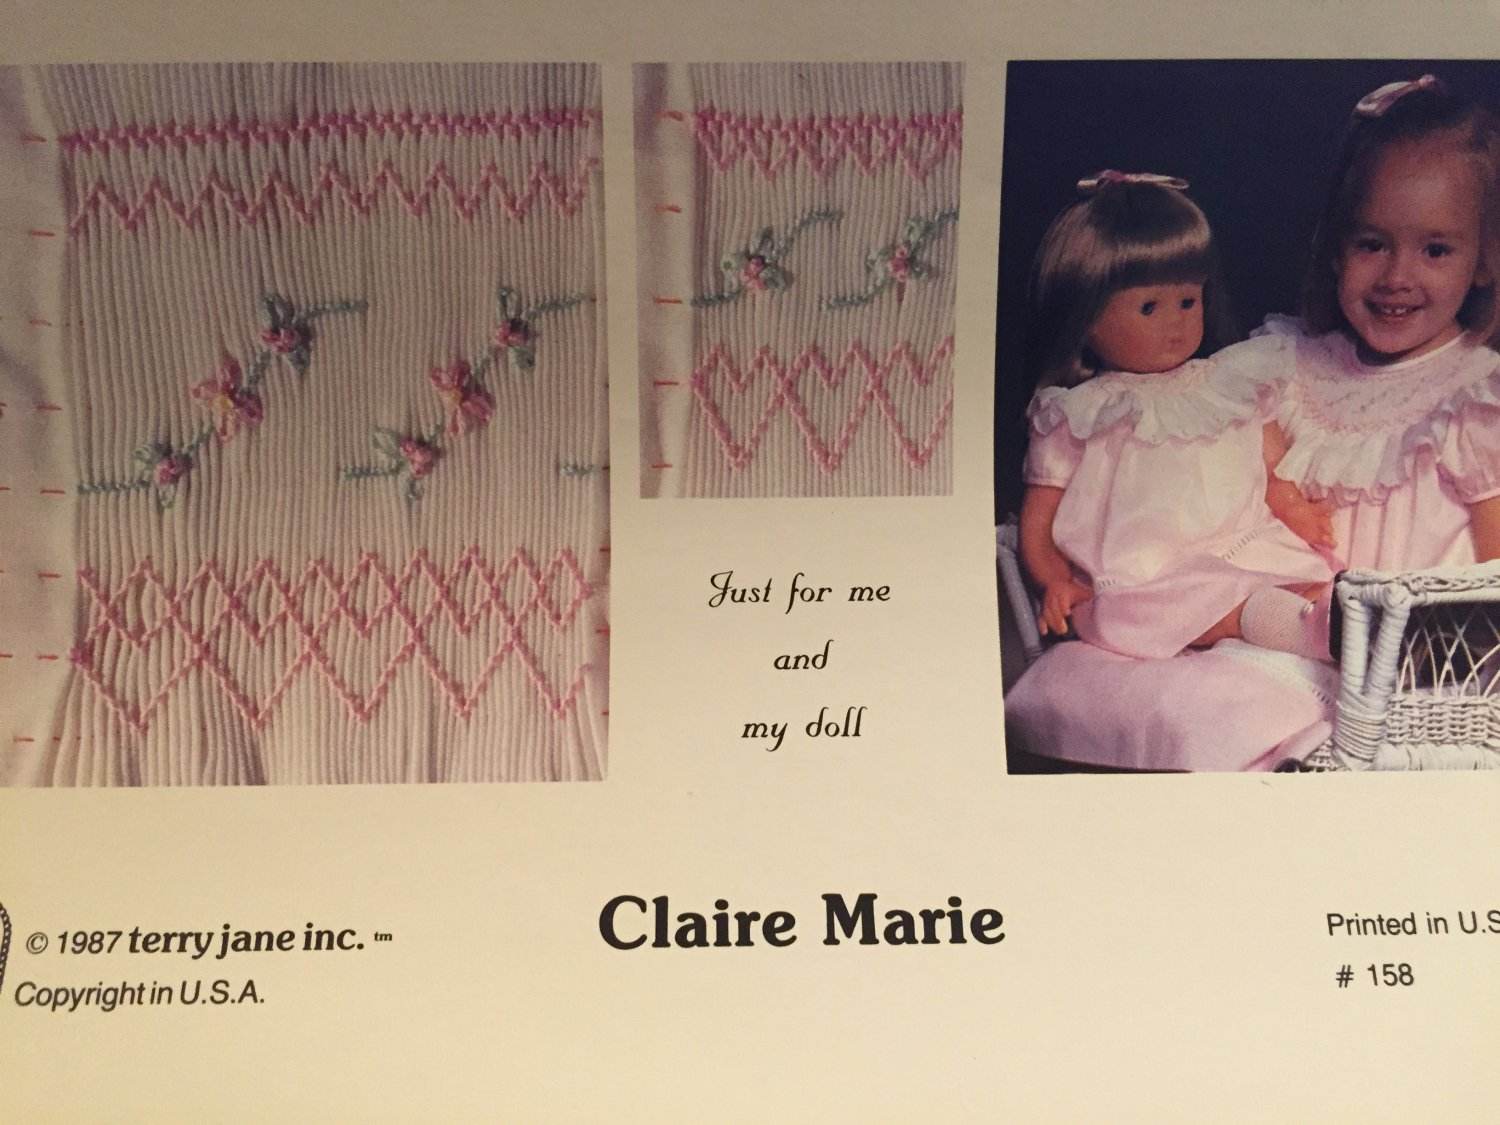 CLAIRE MARIE Smocking plate from Terry Jane Inc. Just for me and my doll.